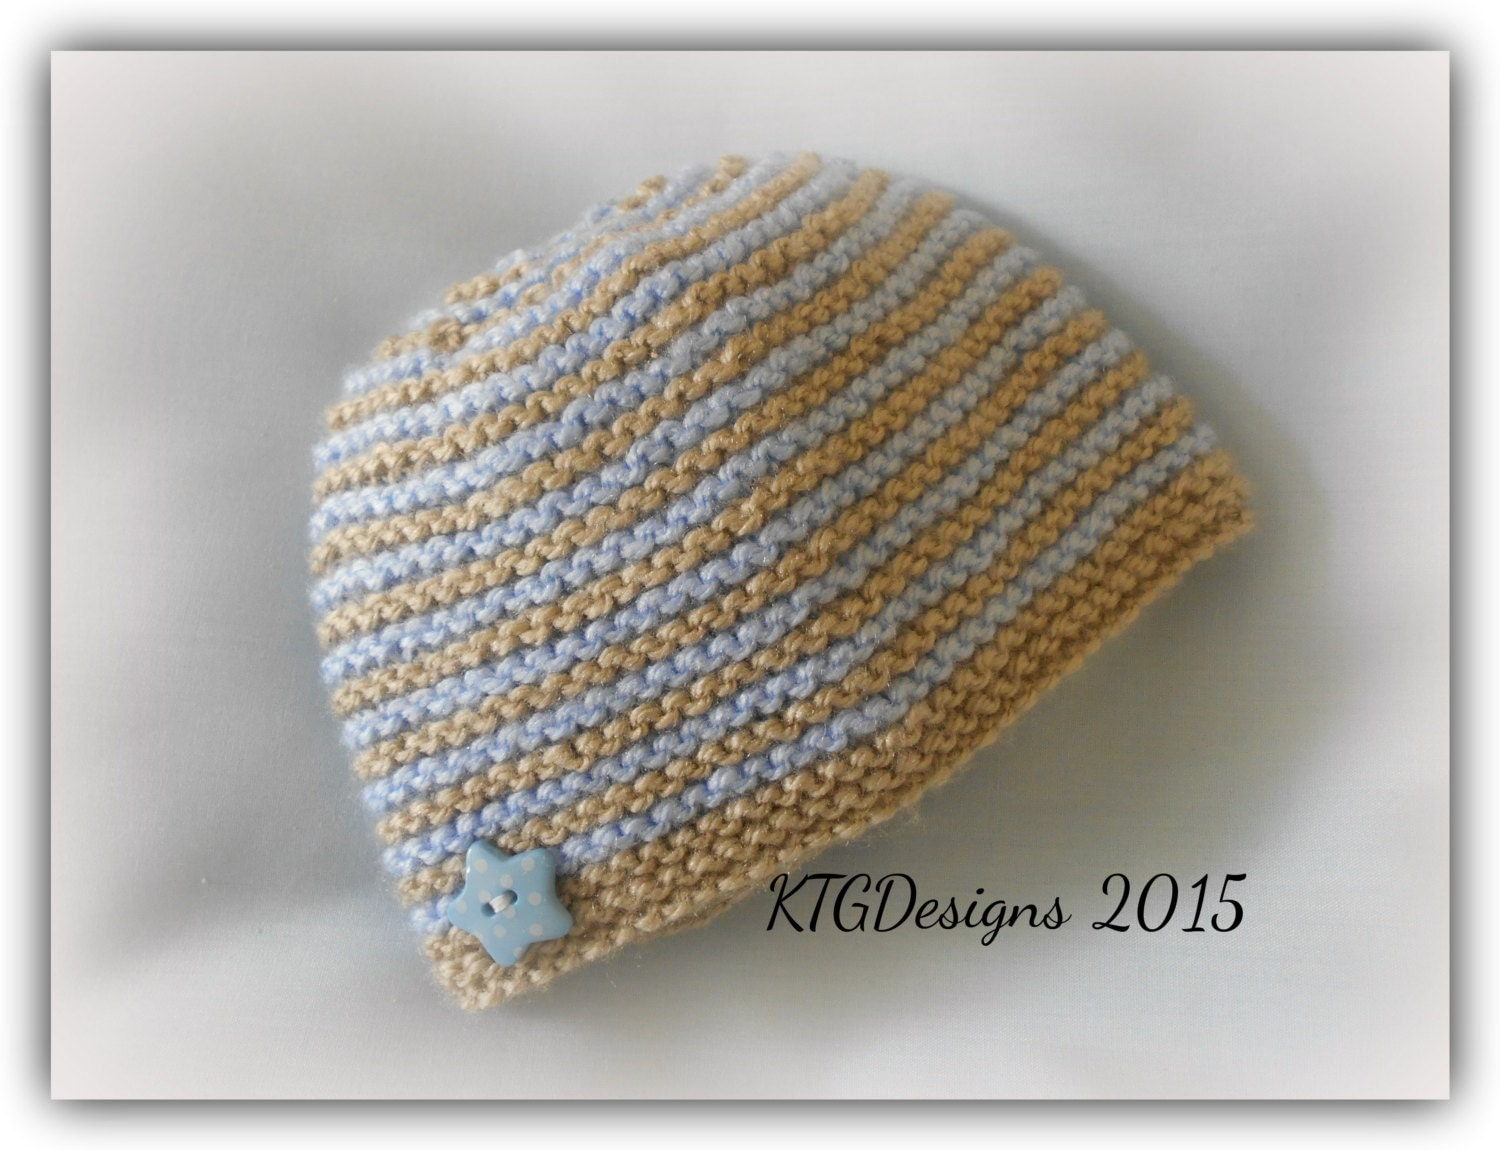 Easy Baby Hat Knitting Pattern For Beginners : Dk knitting pattern to knit baby beanie hat easy beginners